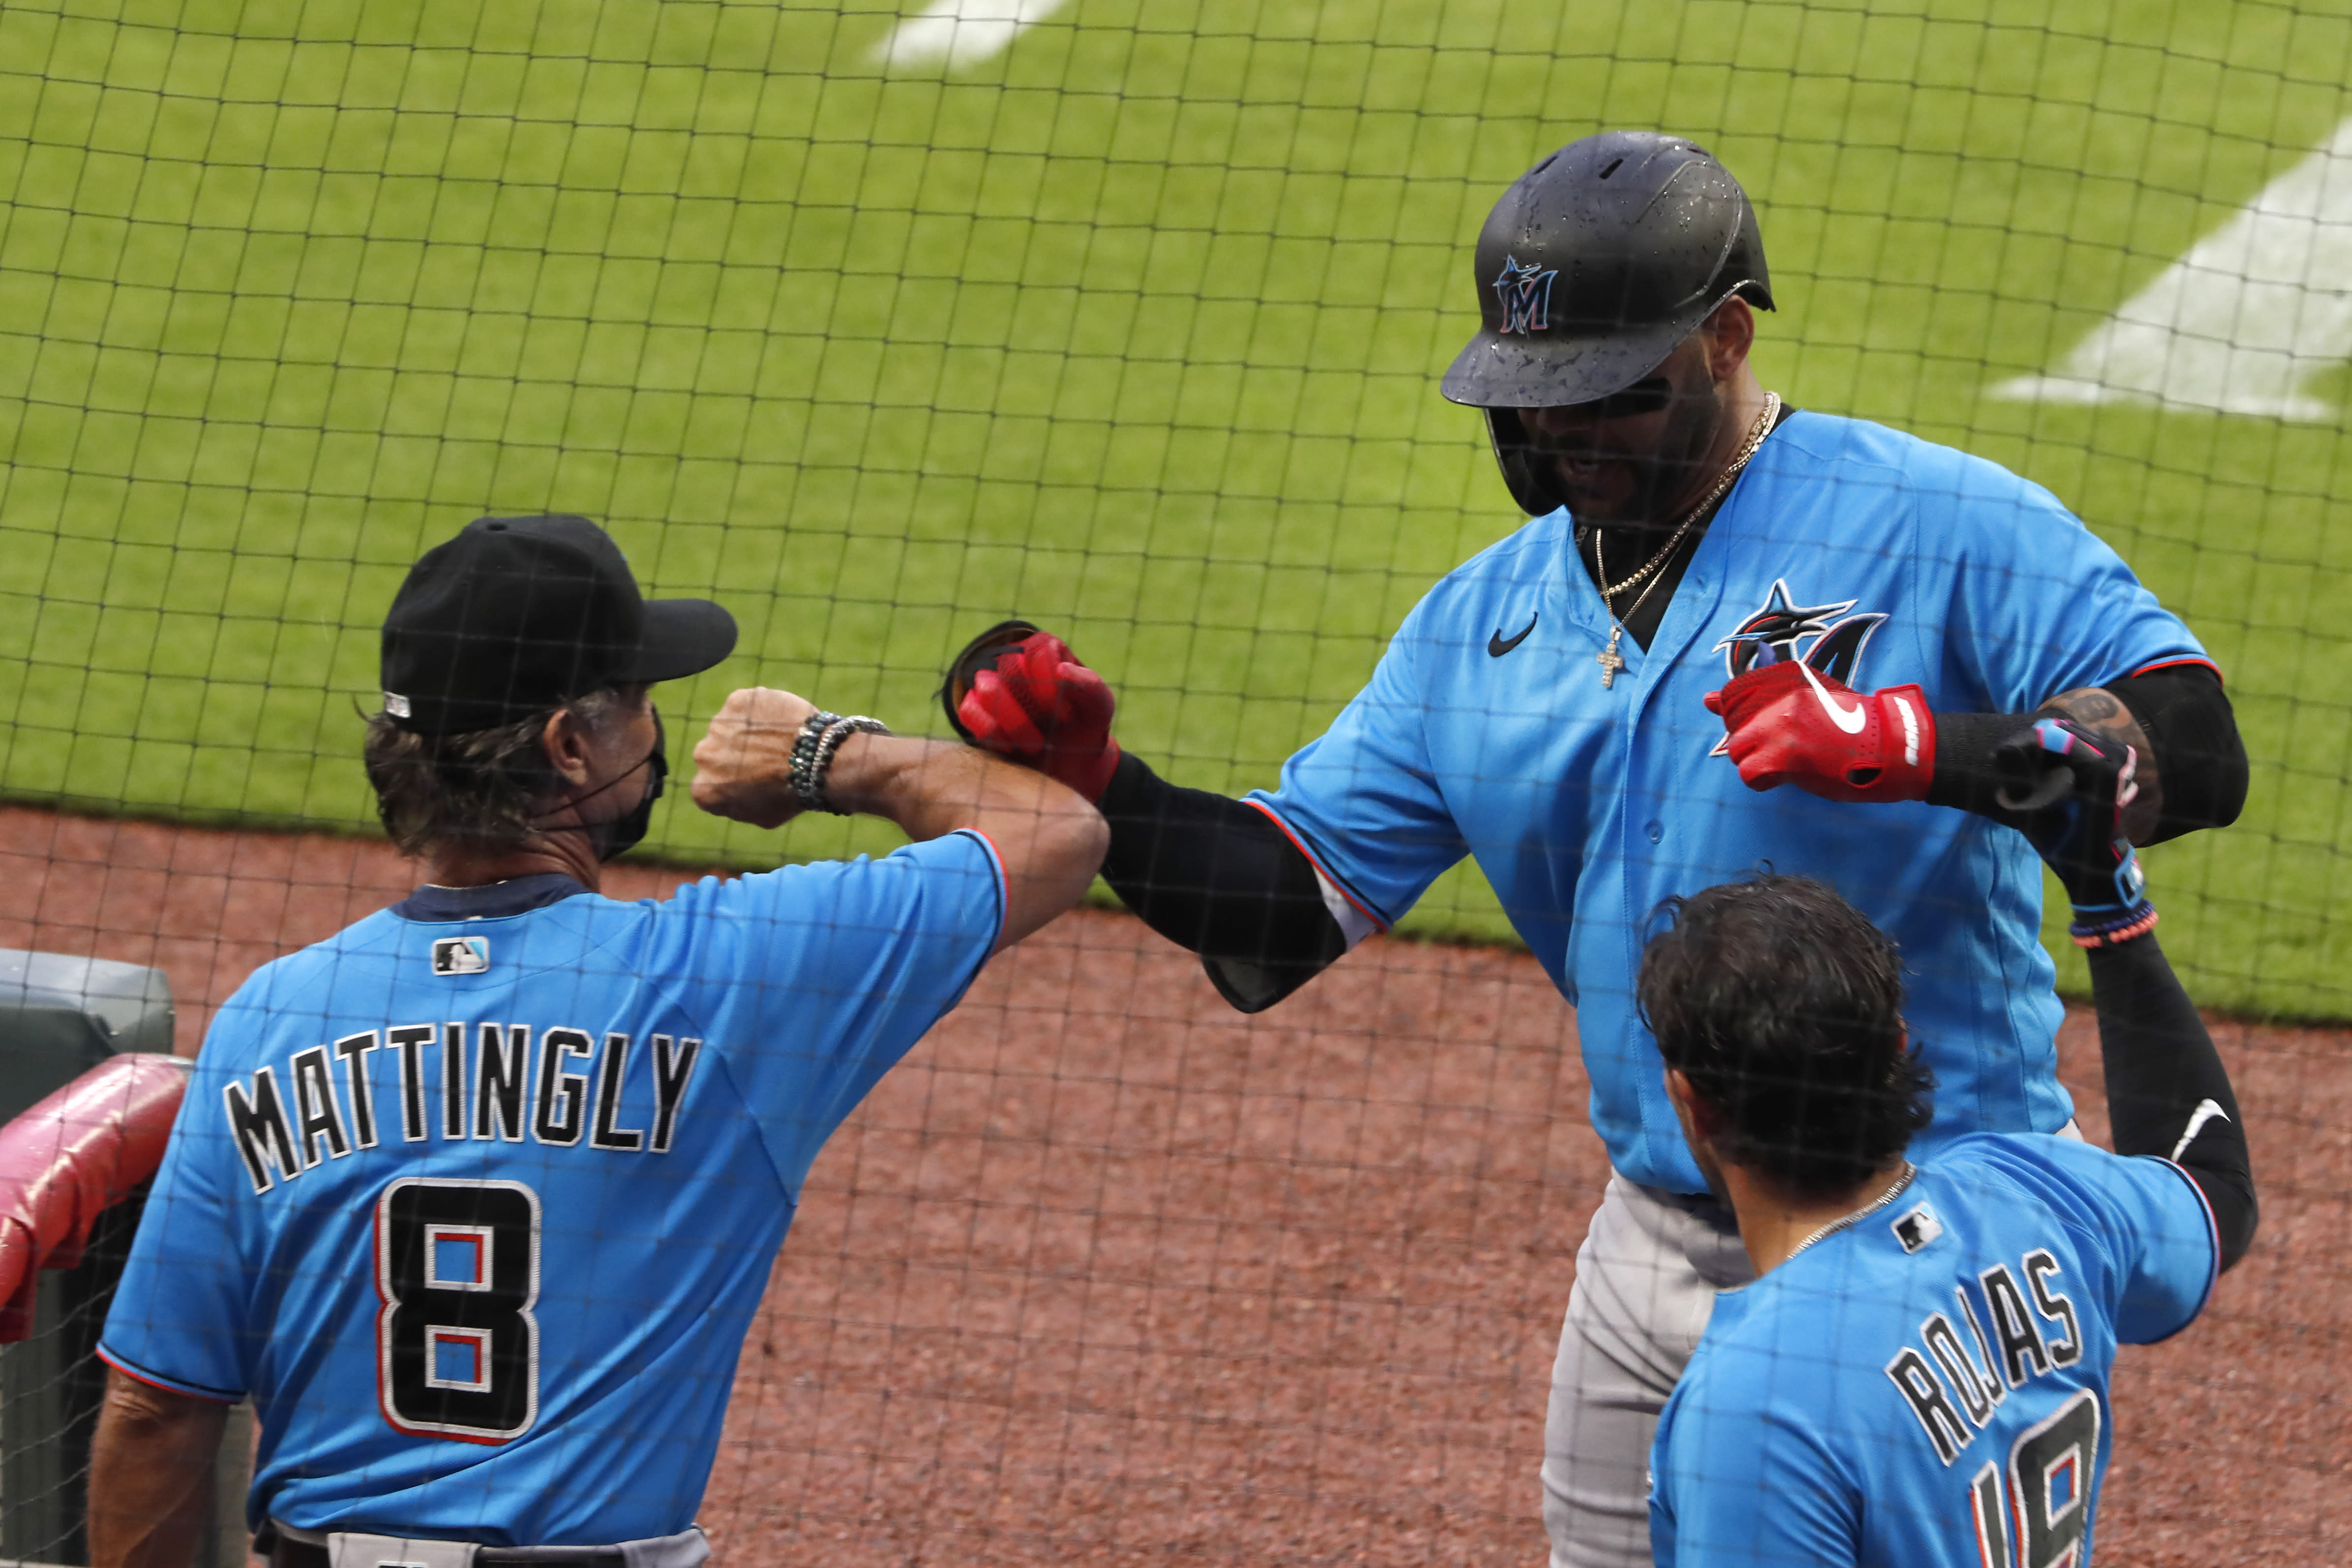 Miami Marlins' Jonathan Villar (2), center, is greeted a the dugout by Miami Marlins manager Don Mattingly (8) after hitting a home run in the third inning of an exhibition baseball game against the Atlanta Braves Tuesday, July 21, 2020, in Atlanta. (AP Photo/John Bazemore)